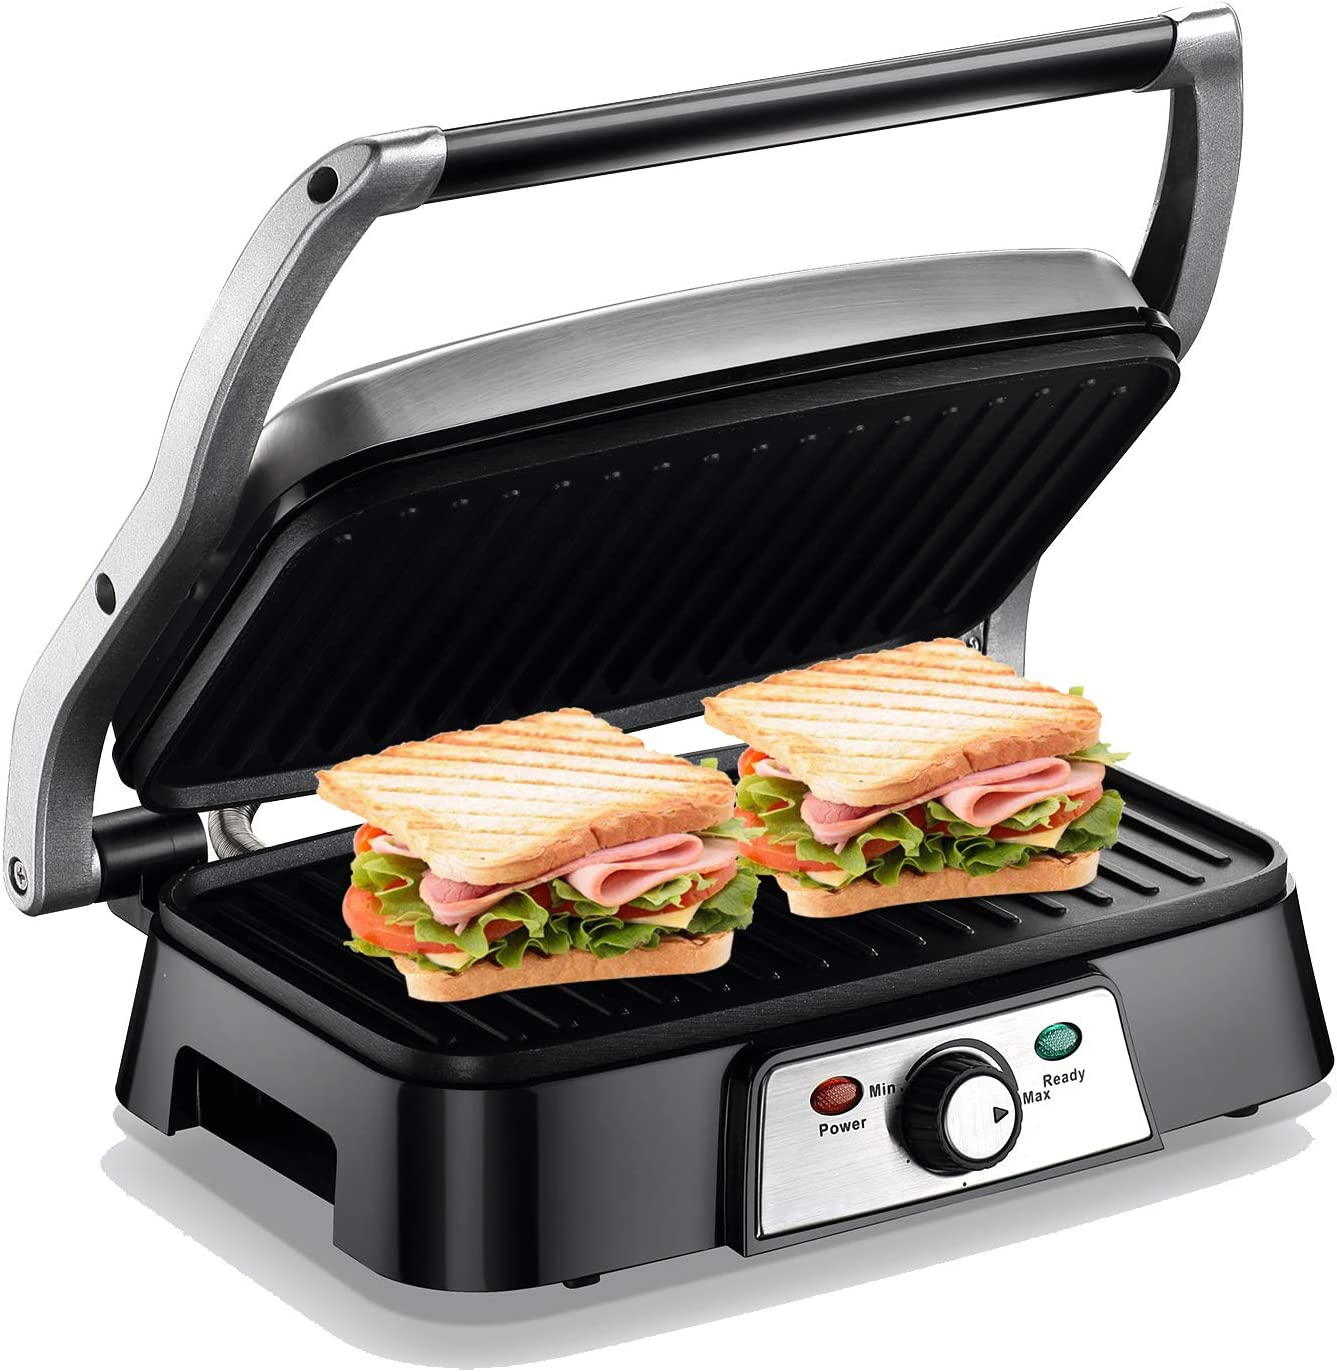 Panini Maker 4 Slice Panini Press Grill, Non-stick Sandwich Maker with Removable Drip Tray and Temperature Control 1200W, Opens 180 Degrees for Sandwich, Steaks, Grilled fish